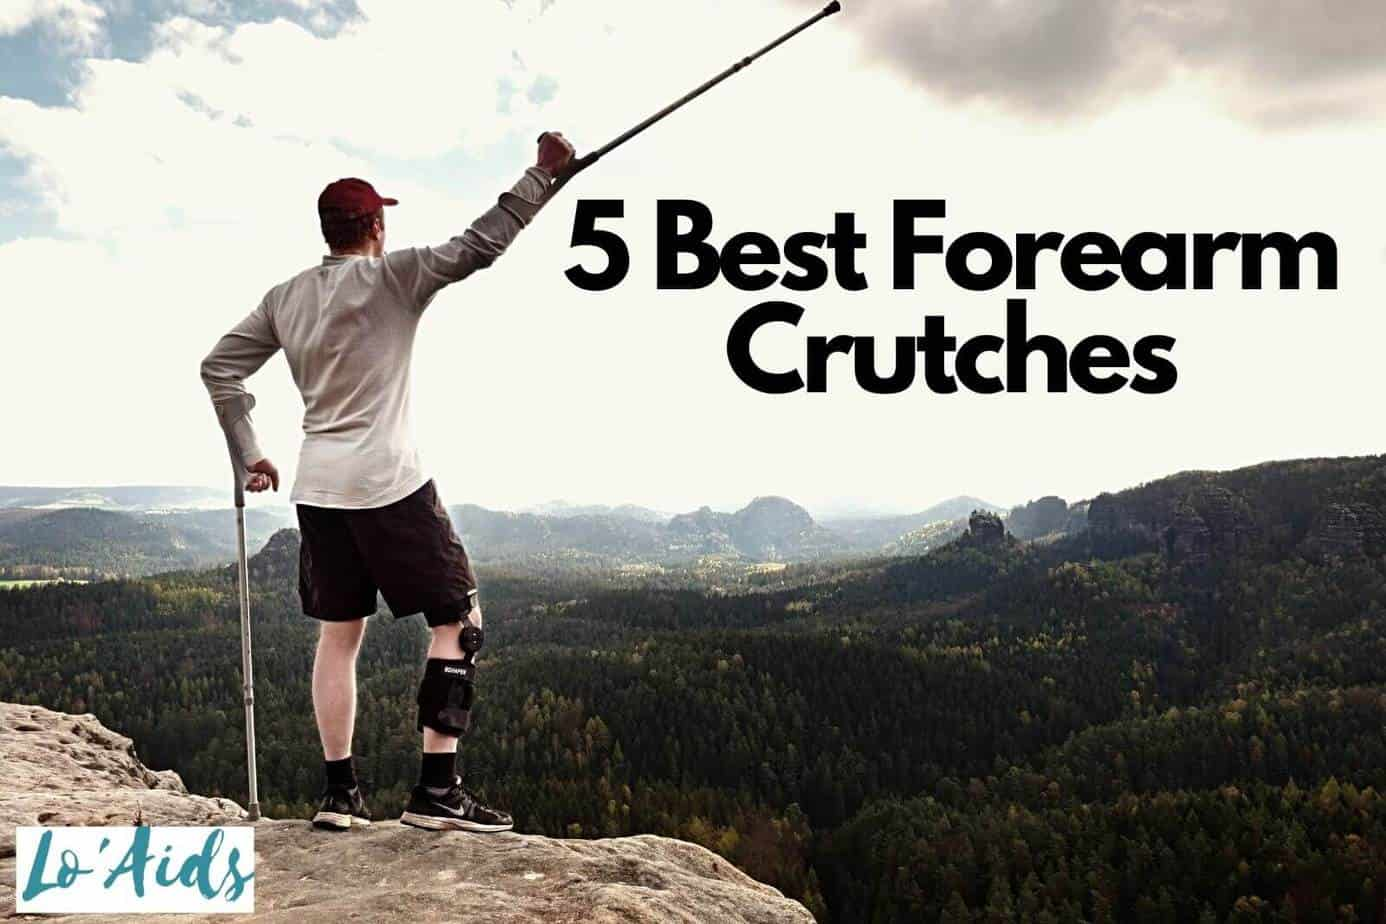 a man on top of a mountain while raising his best forearm crutches